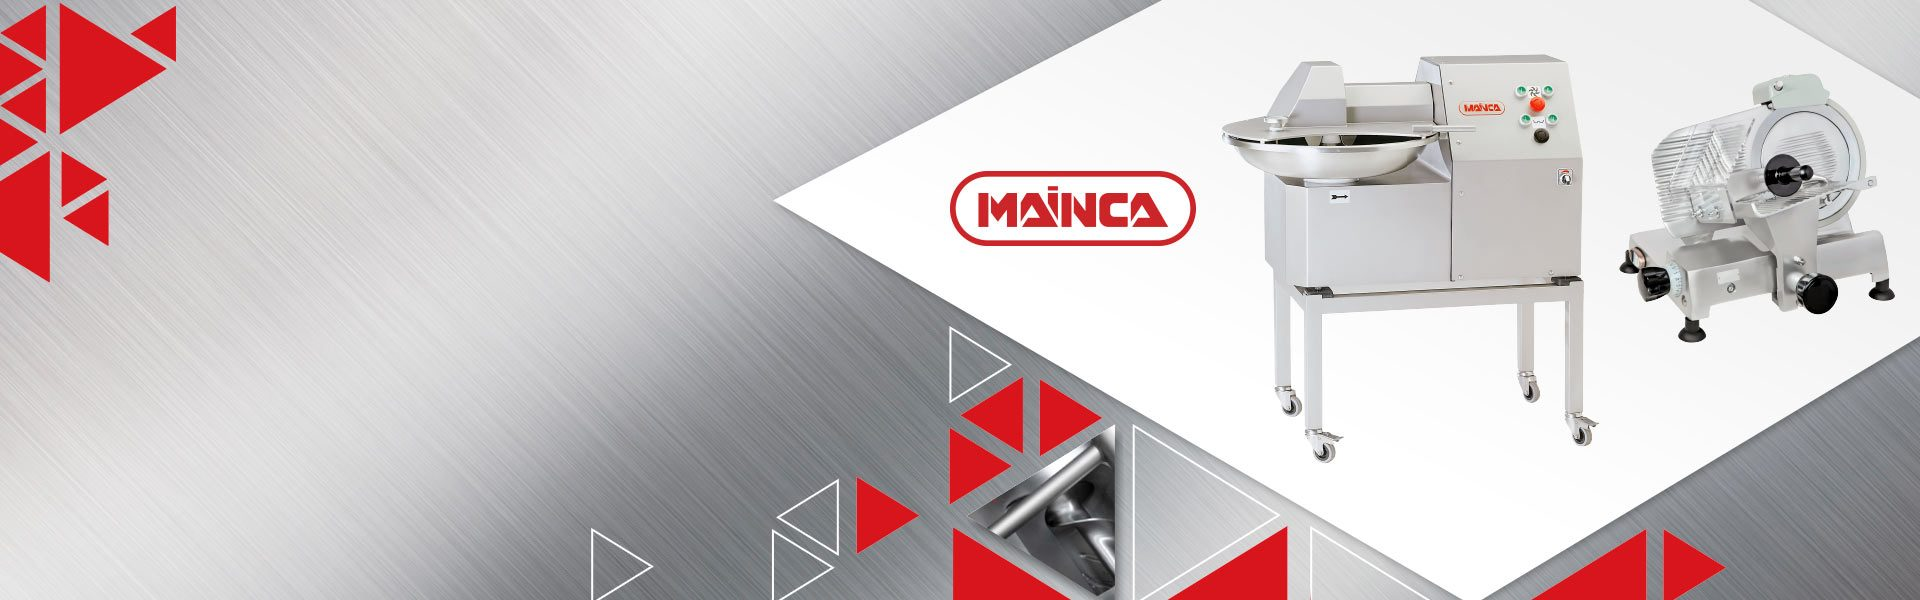 15% discount on MAINCA products